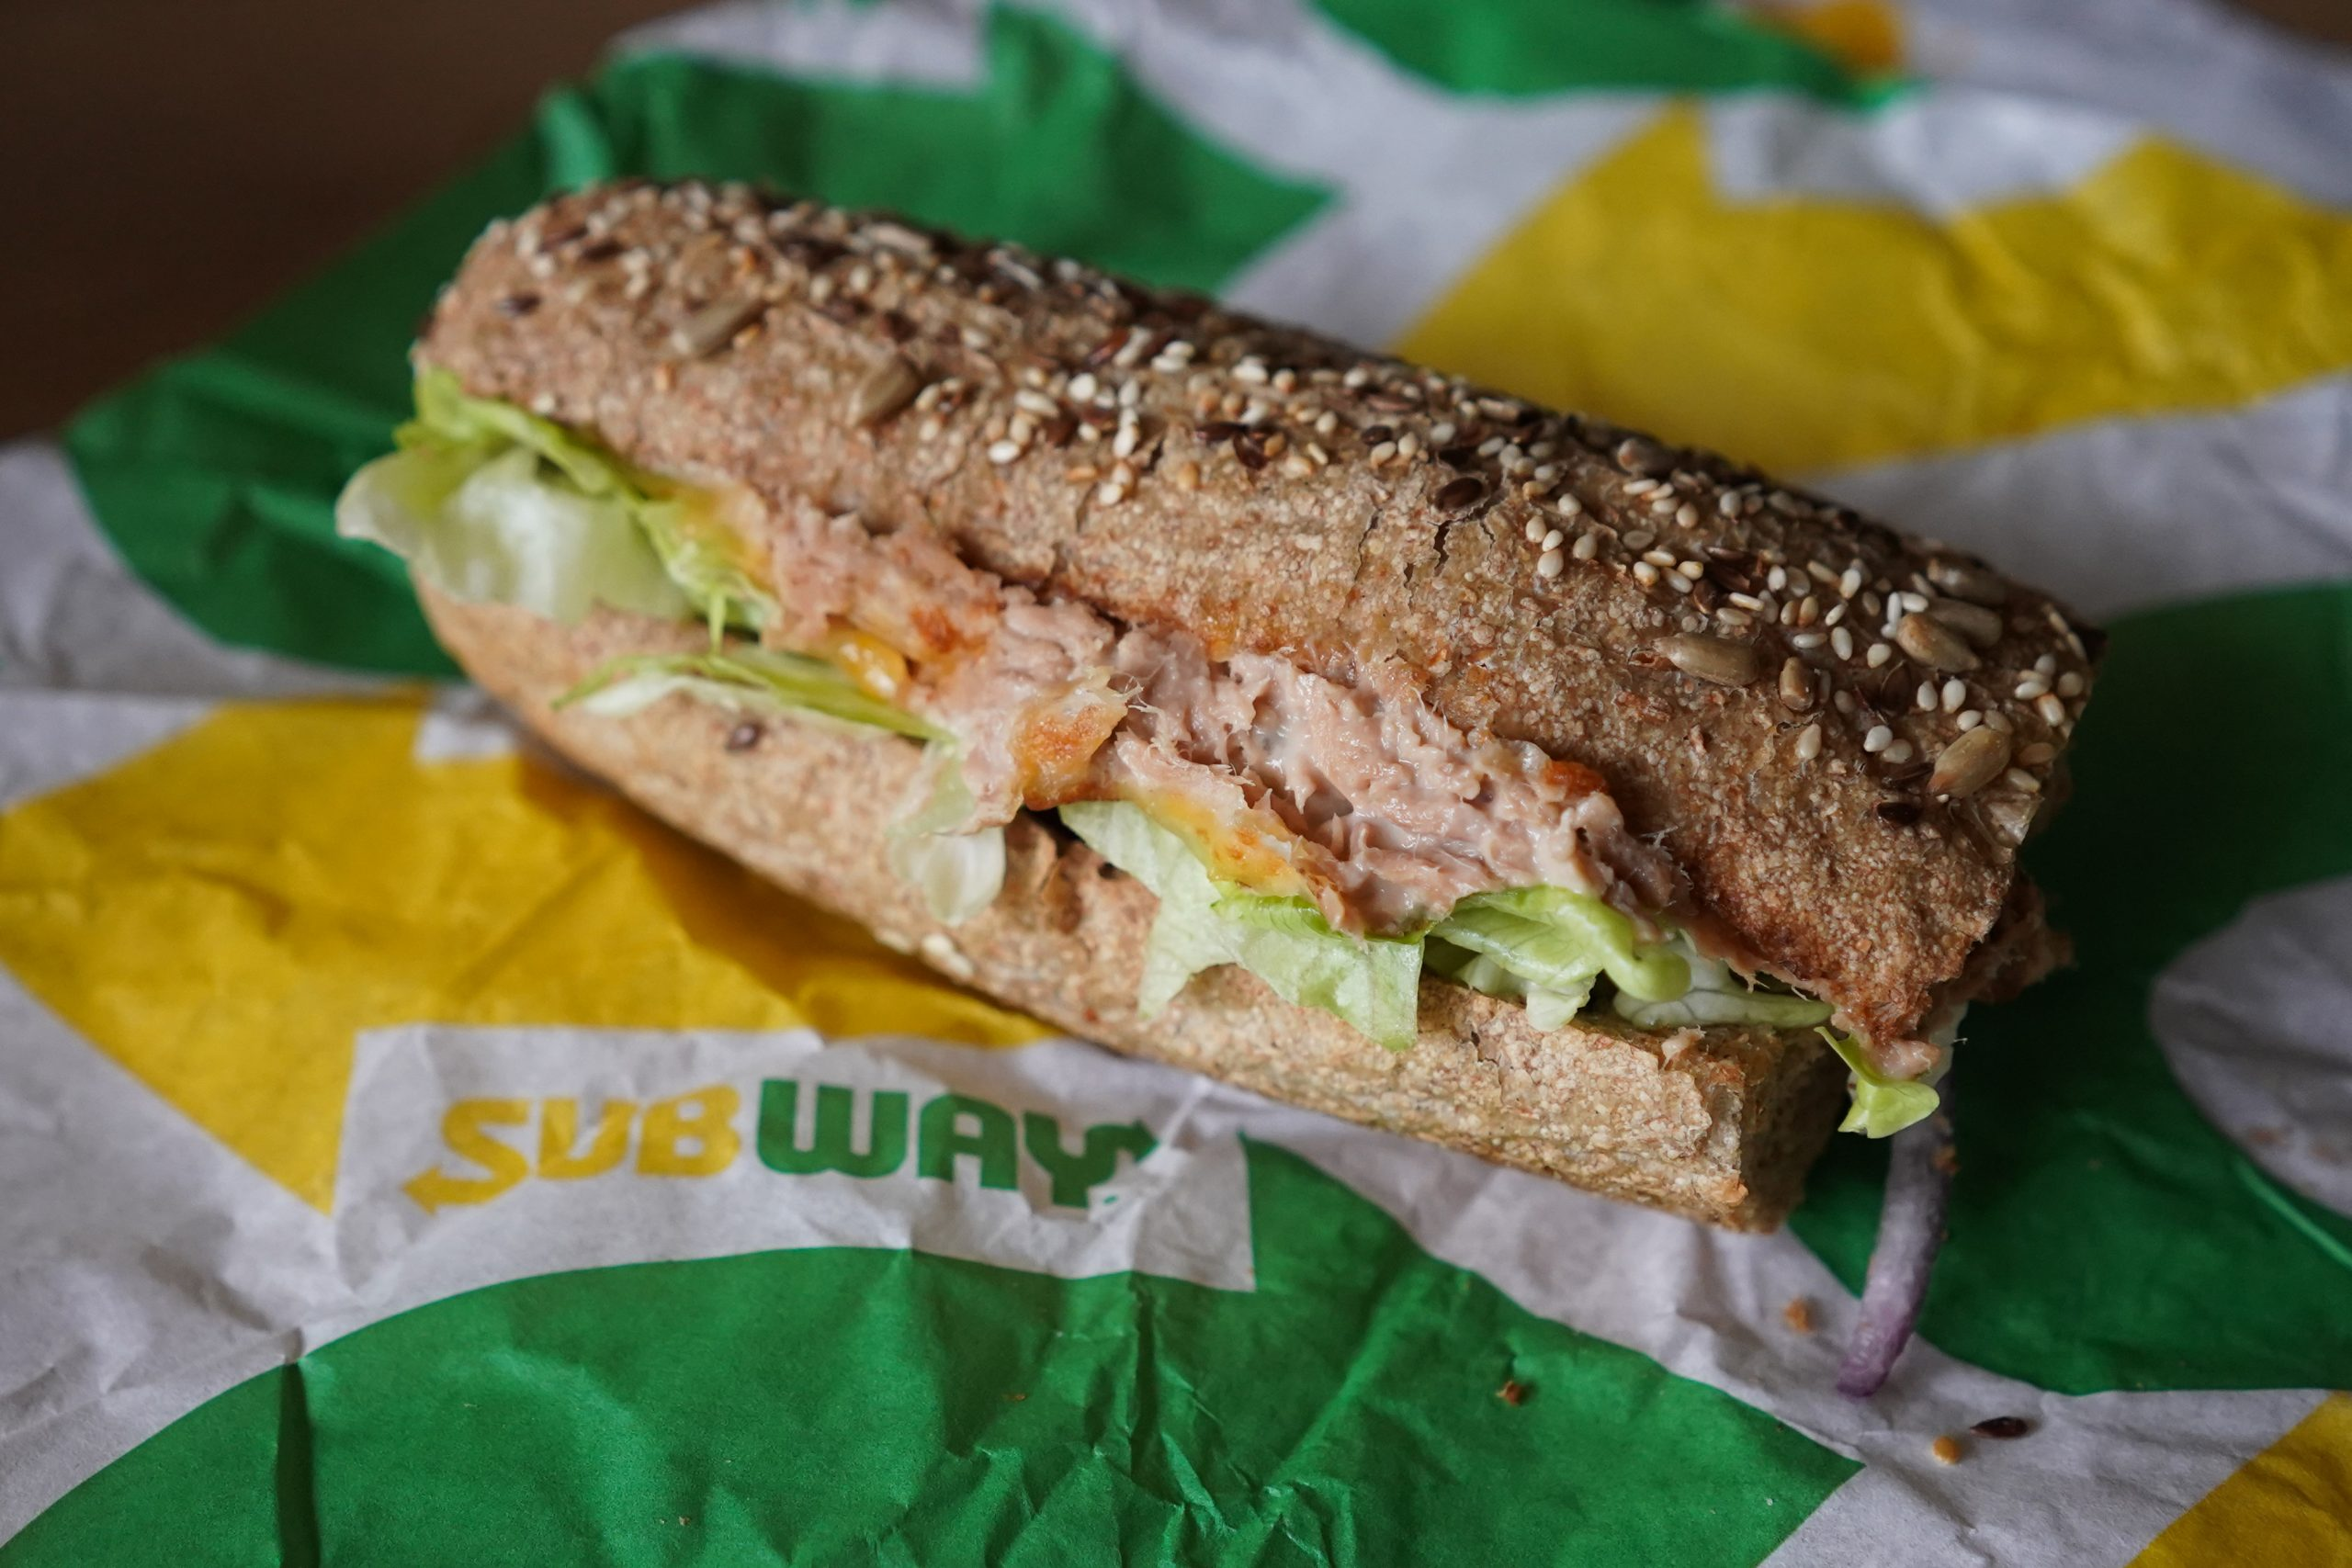 A Lab Says Subway Tuna Sourced in L.A. Was Mysteriously Missing Tuna DNA